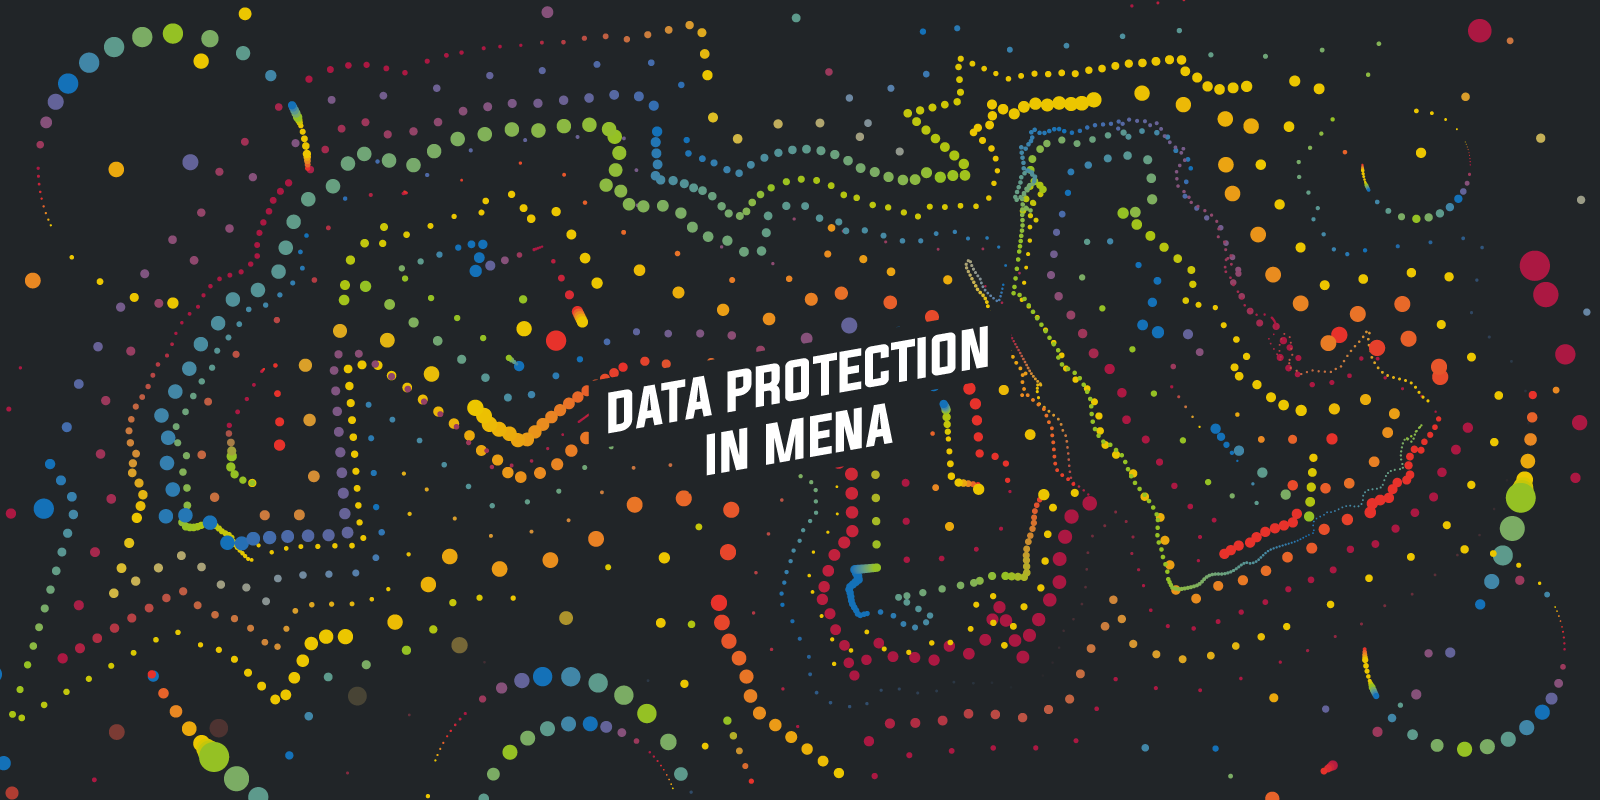 #DataProtectionDay in the MENA region: is there cause to celebrate?